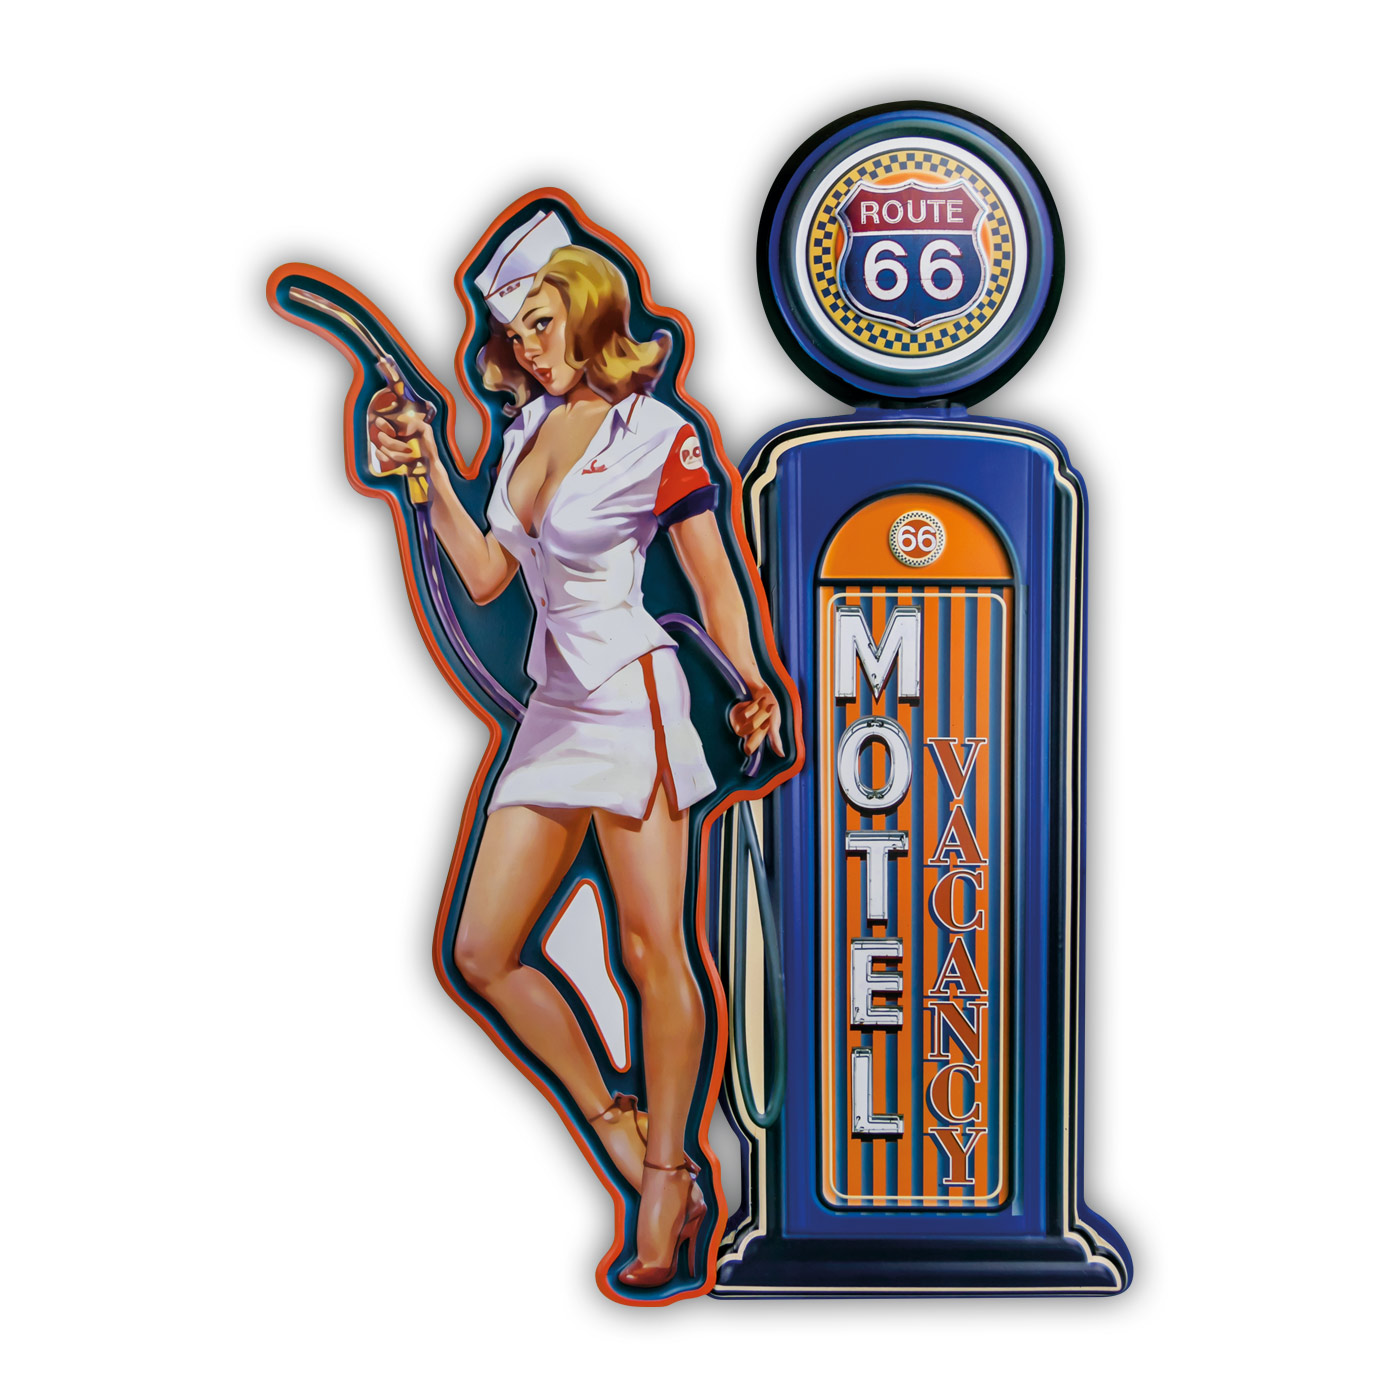 Pin up Motel Route 66